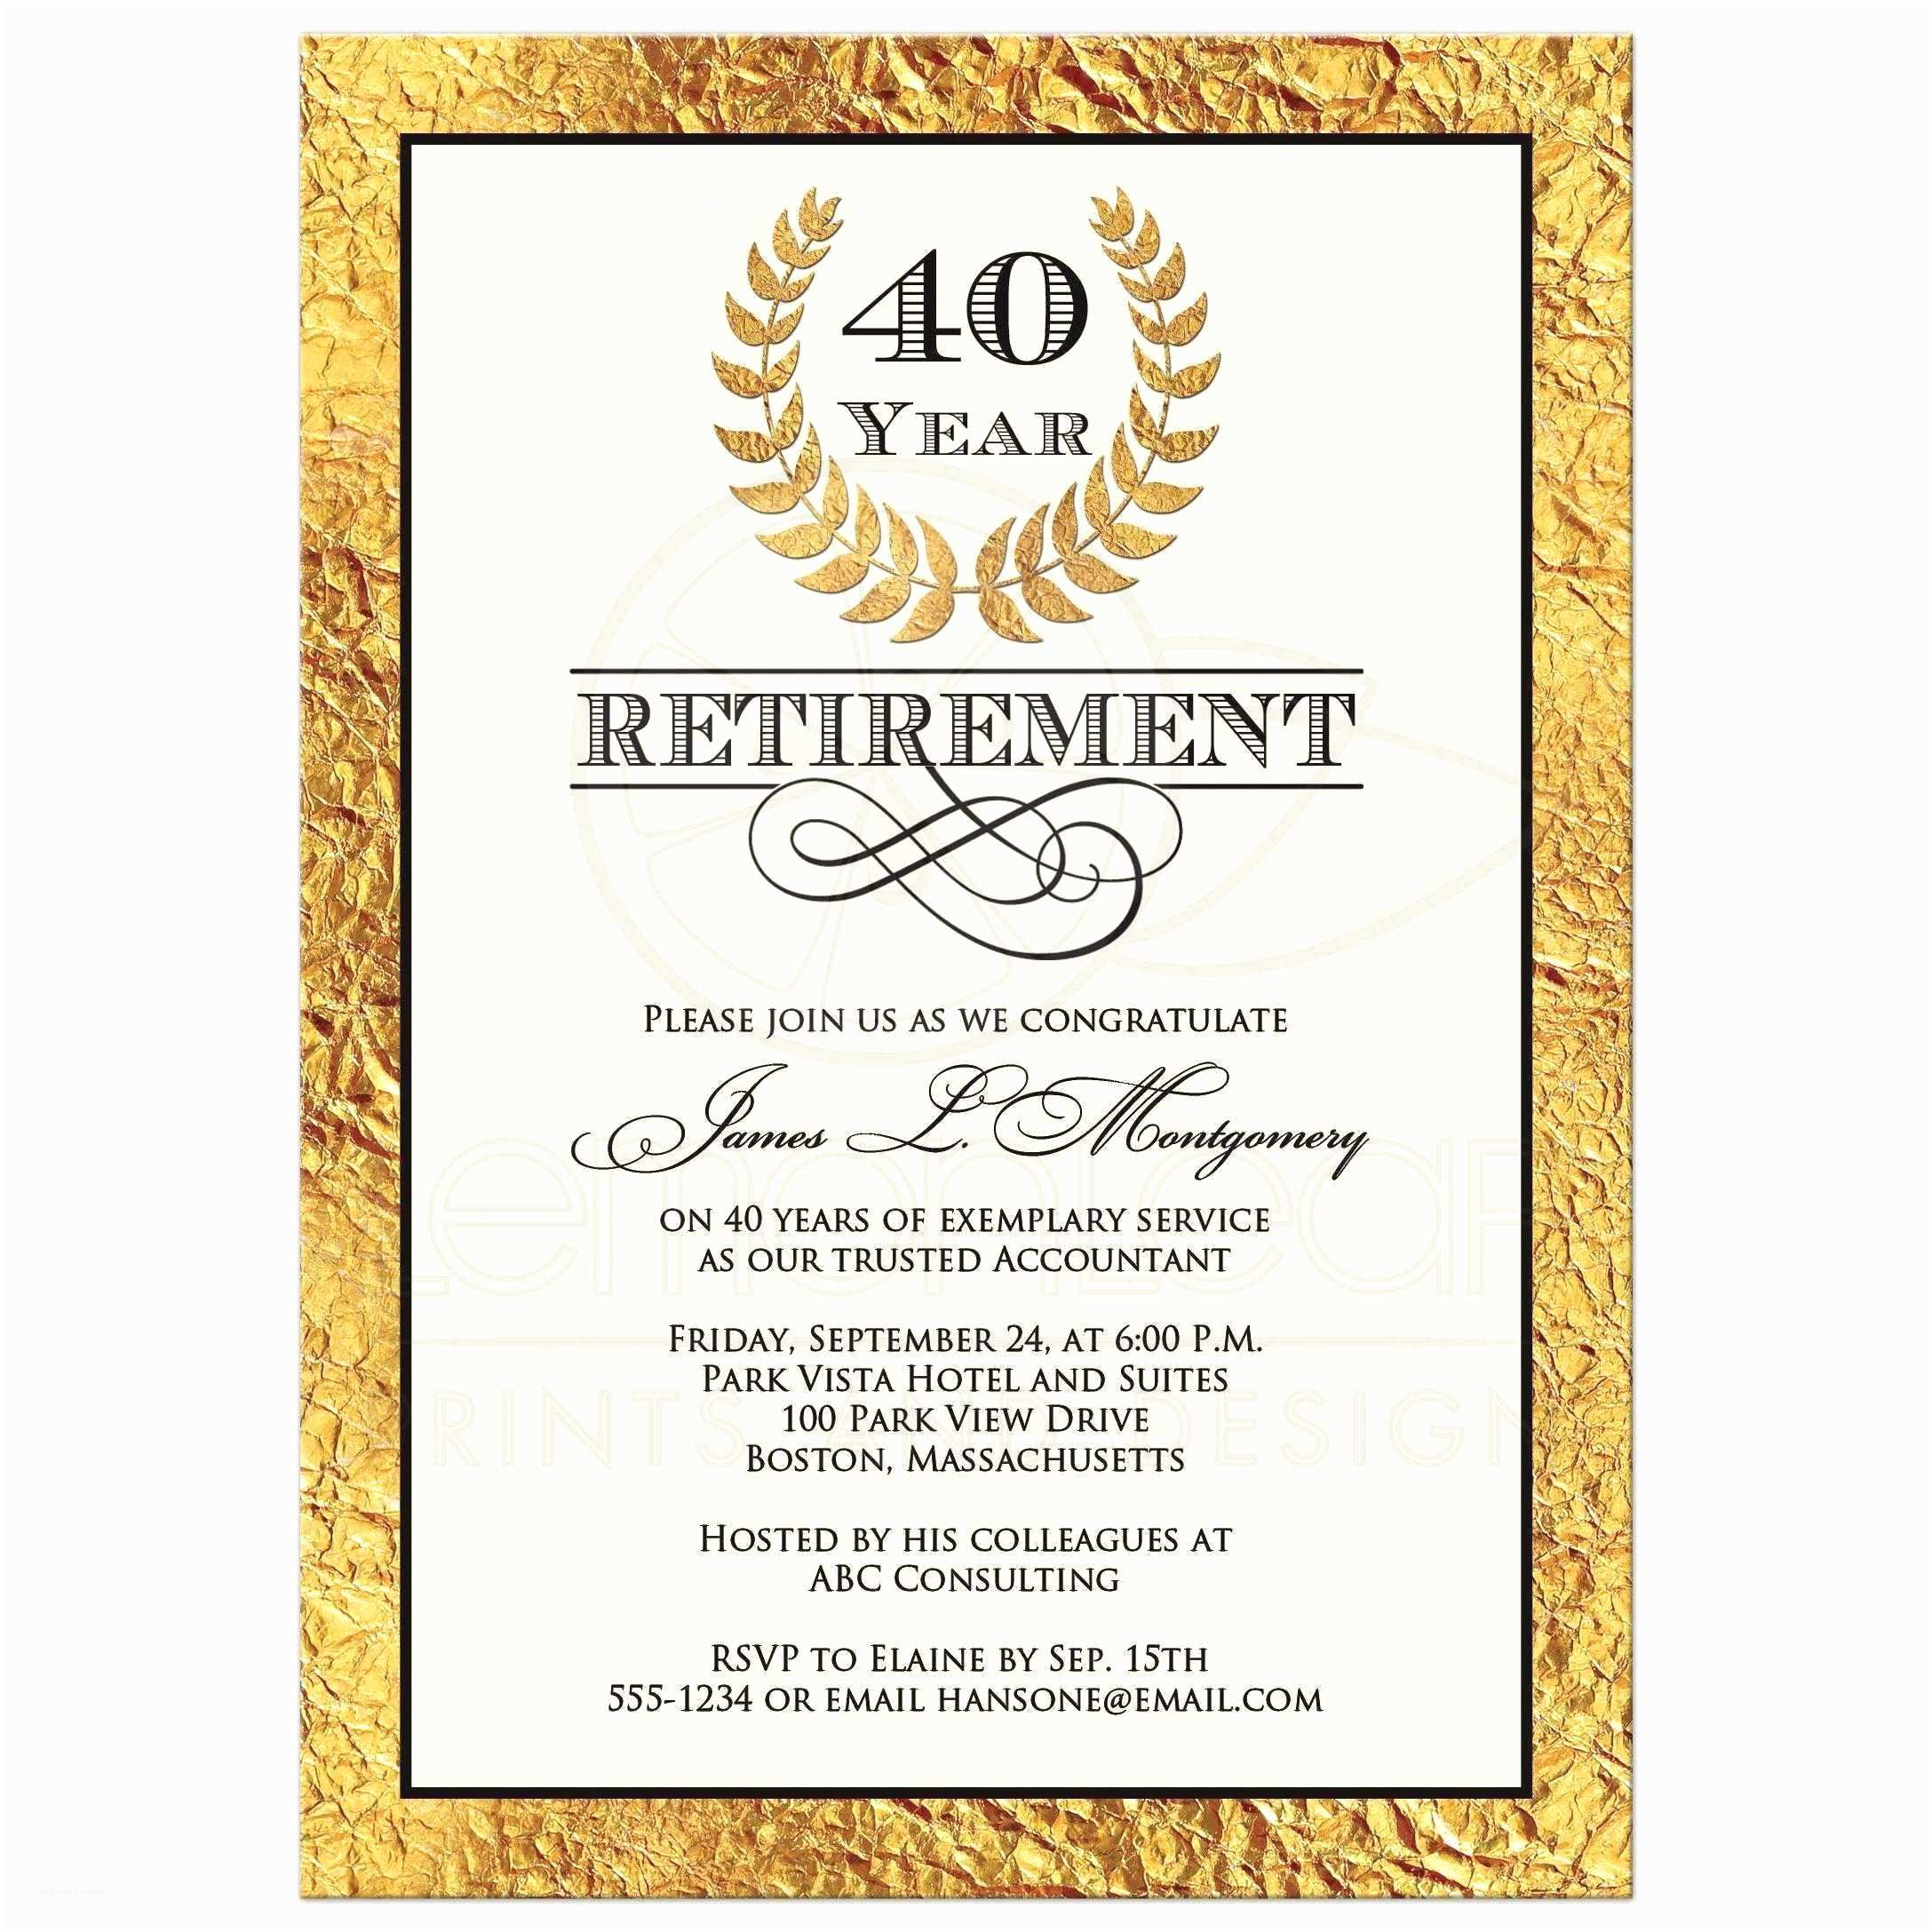 Retirement Invitation Wording Surprise Retirement Invitation Wording Archives